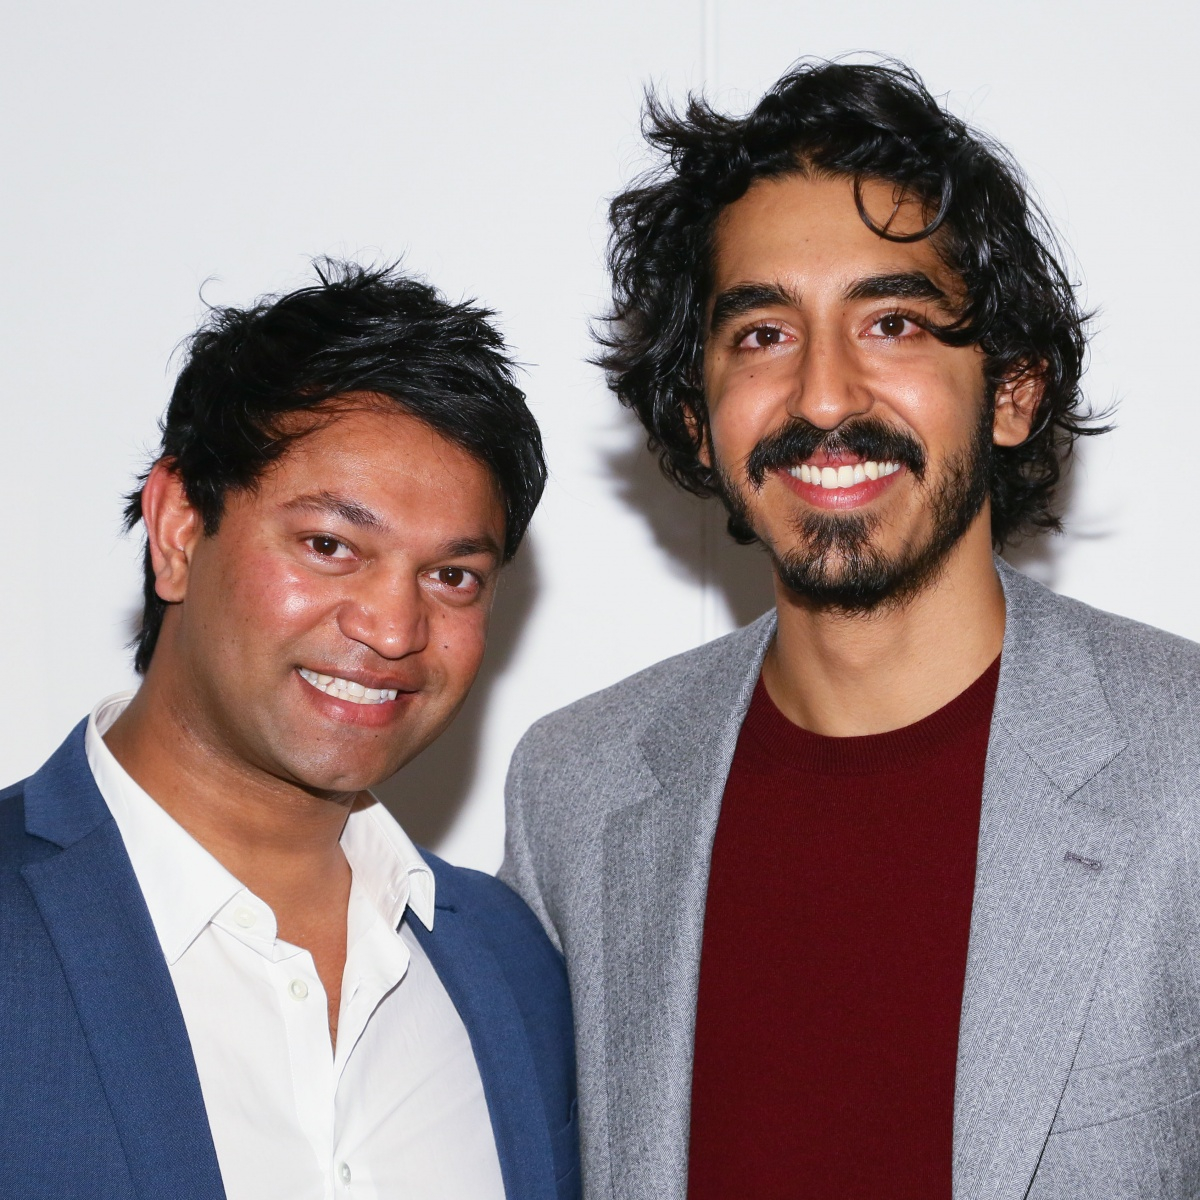 Patel (right) with Saroo Brierley, who he plays on the big screen. Photo: Getty